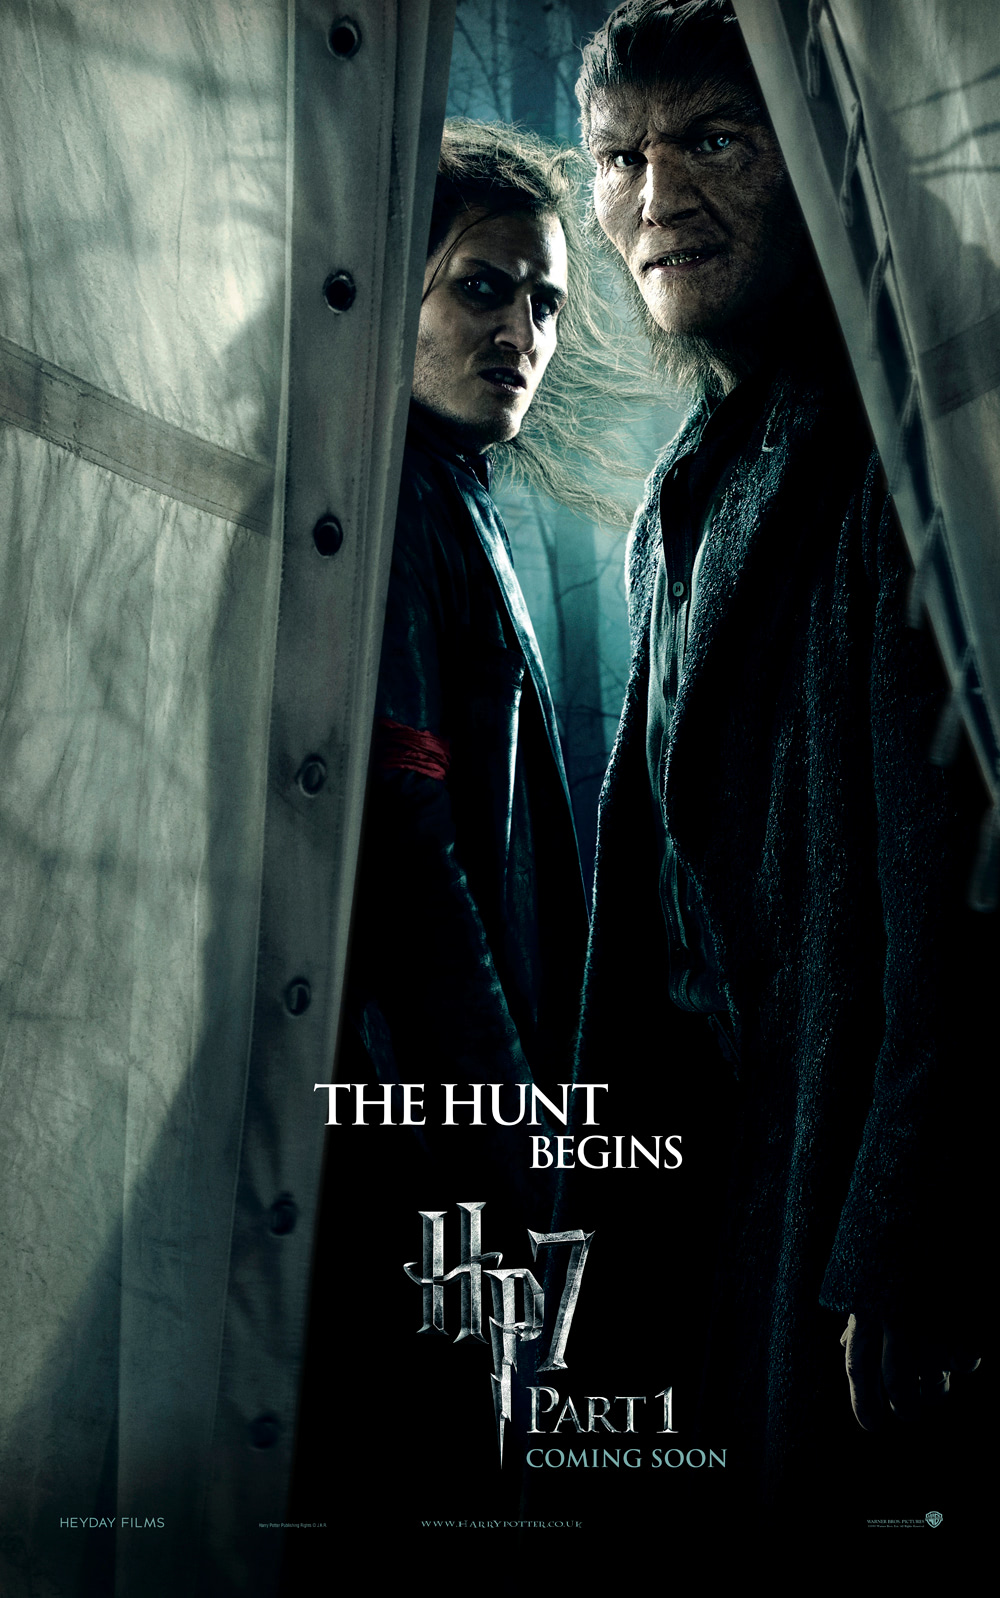 'Deathly Hallows: Part 1' Greyback poster